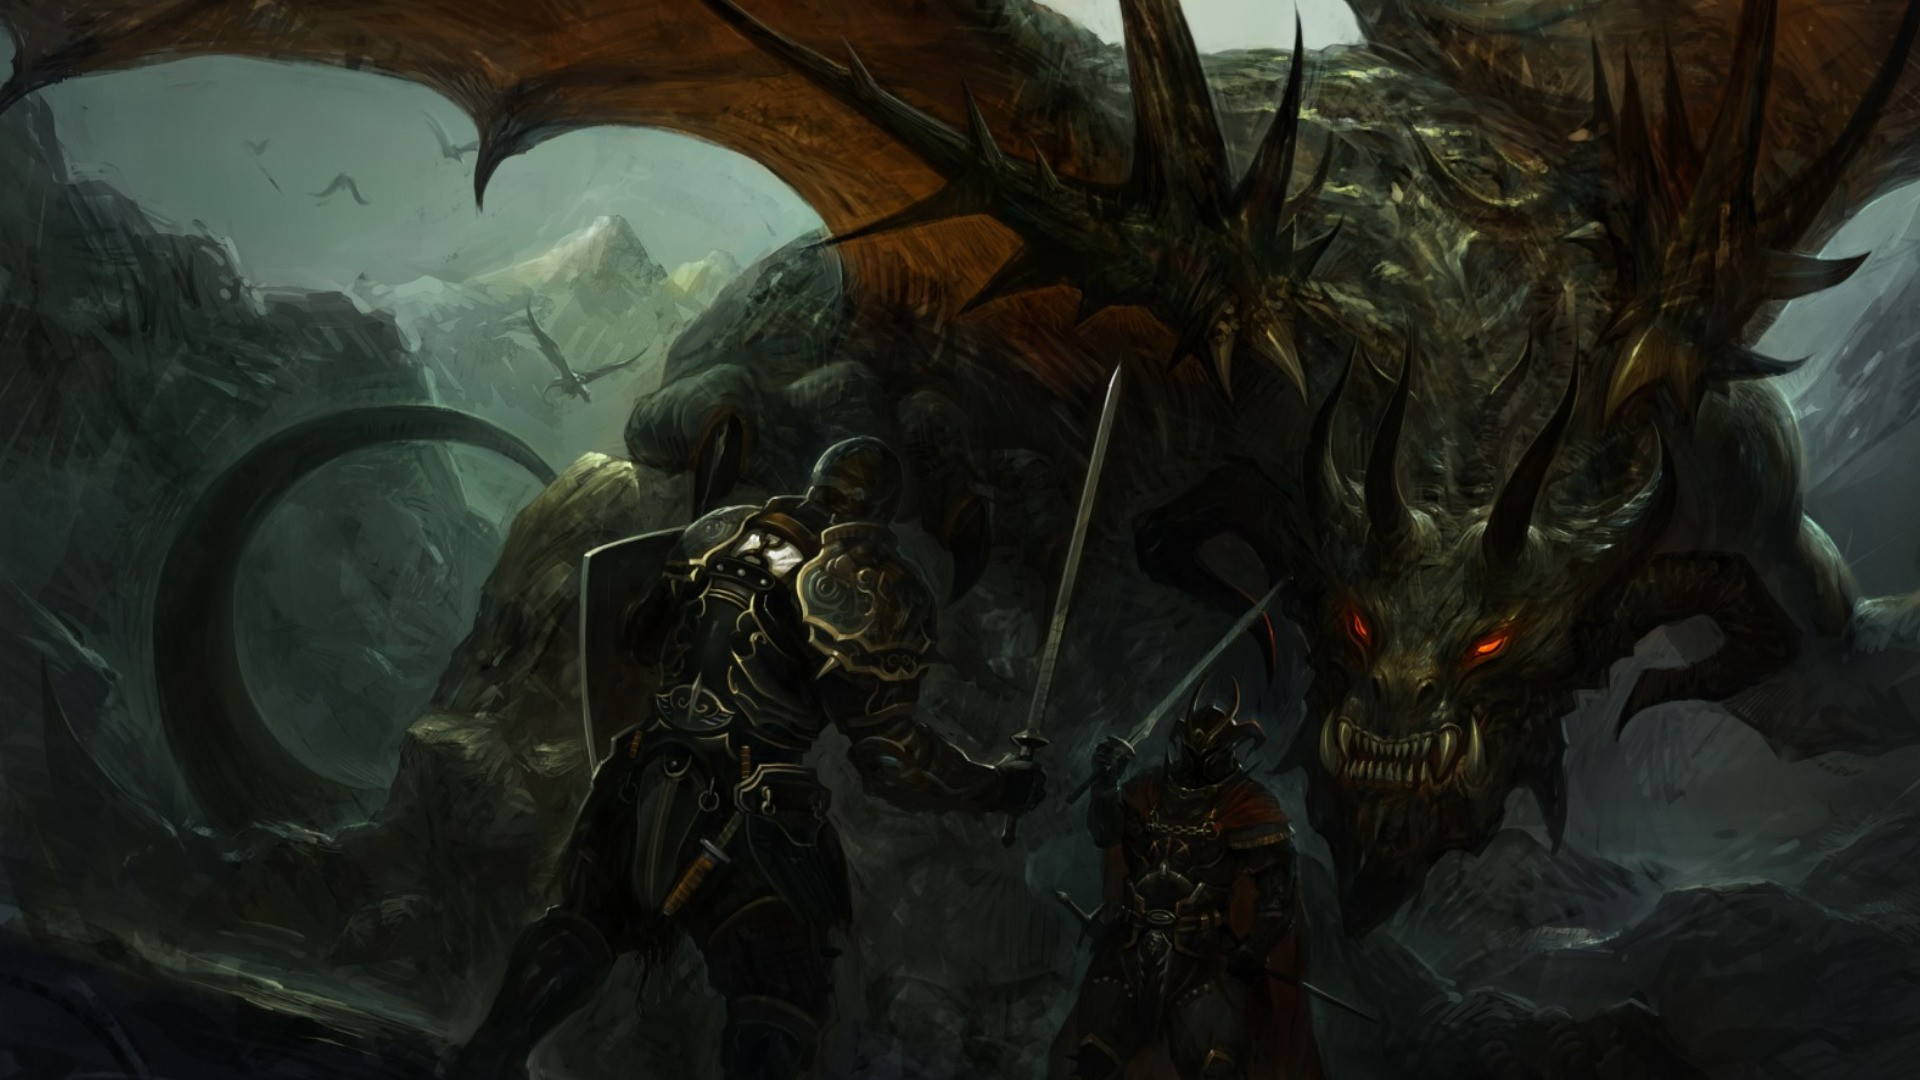 Dark Evil Dragons Wallpaper Download HD Idiot Dollar 1920x1080